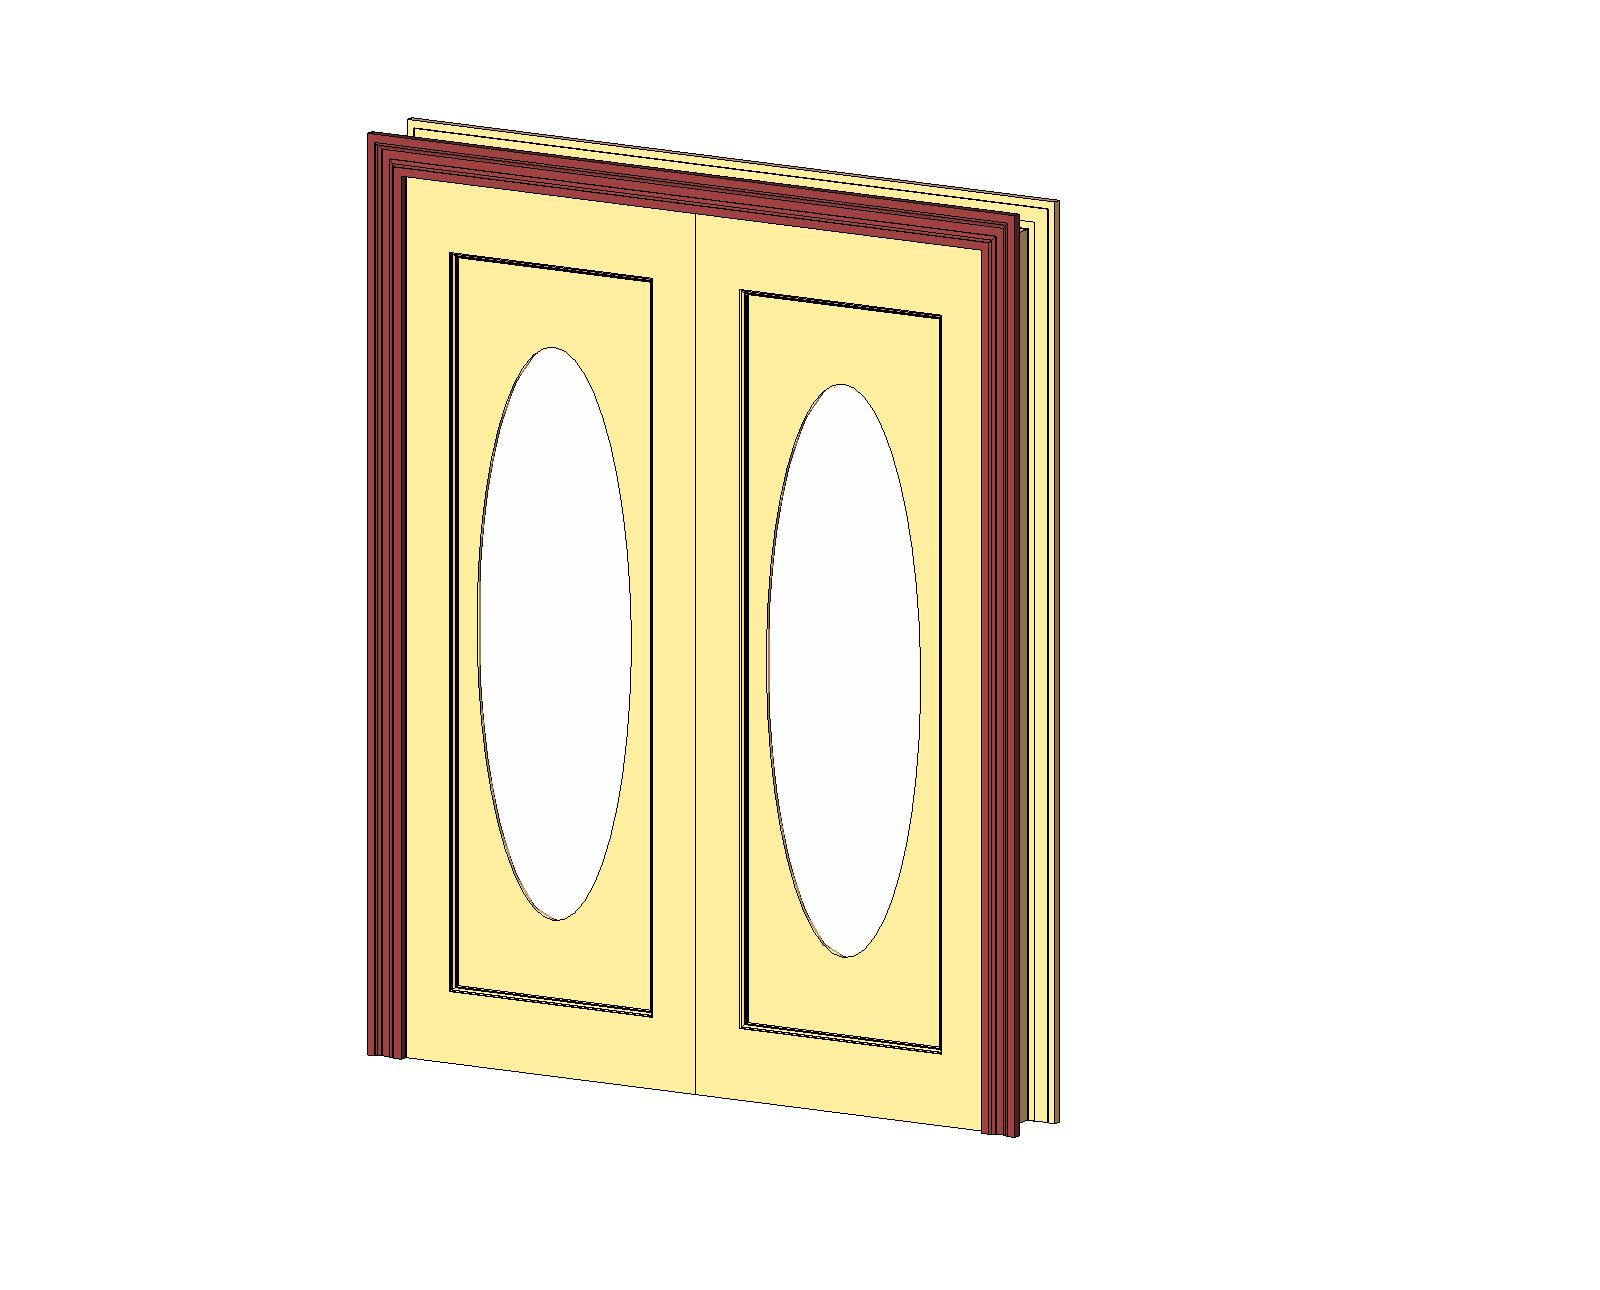 1290 #BC9F0F Doors And Hardware: Common Doors: Entry Double: 1 Panel Glz Oval  wallpaper Hardware For Double Entry Doors 46551600